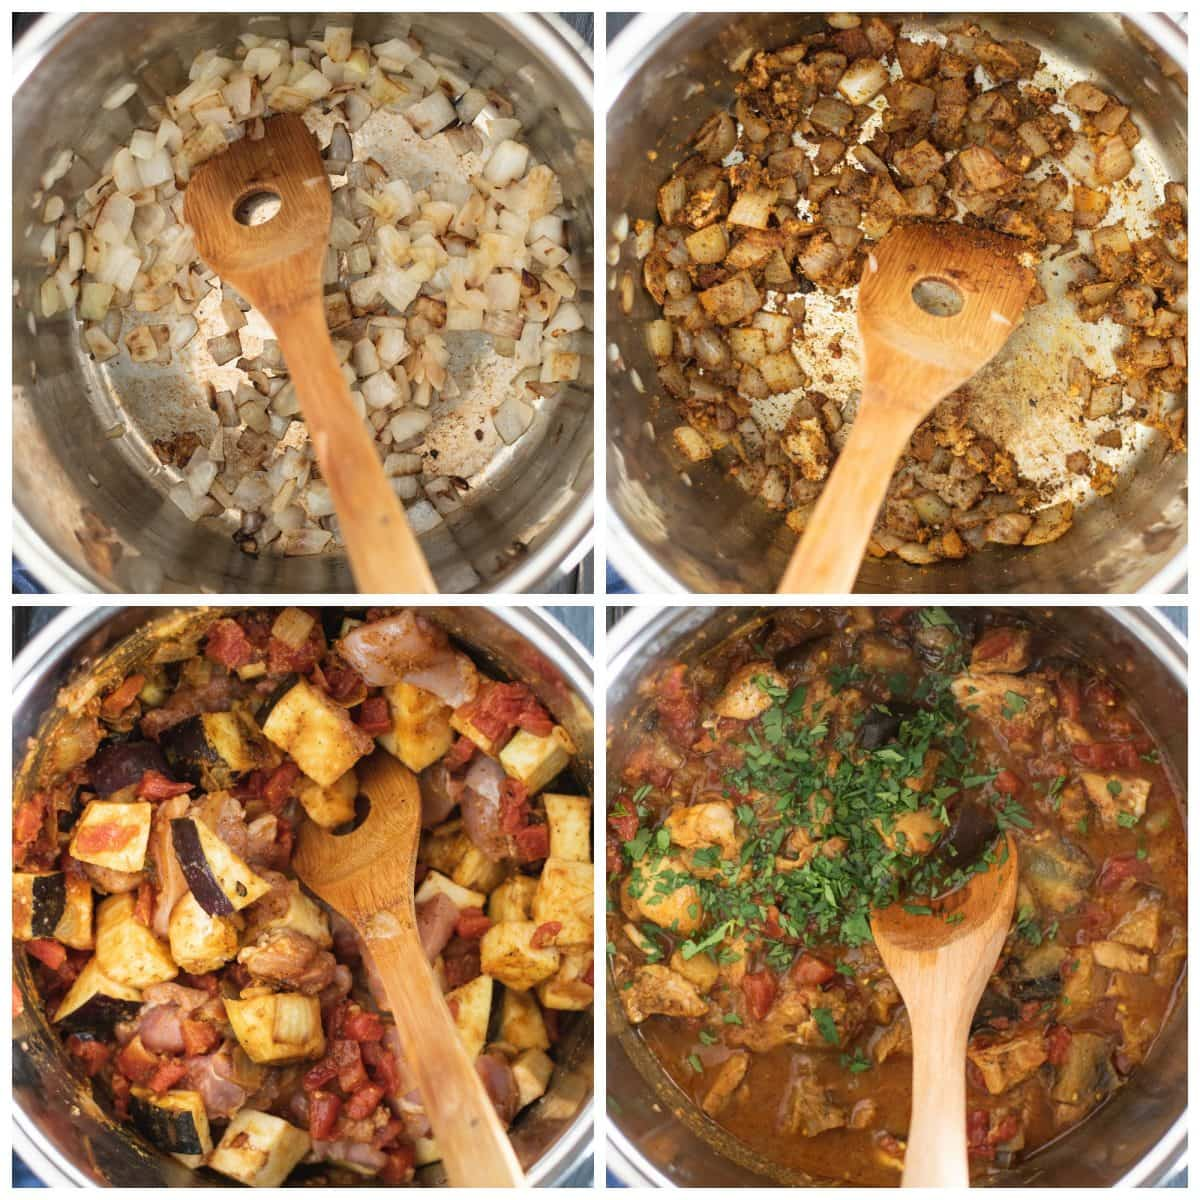 Process steps of for making Instant Pot chicken curry with eggplant recipe